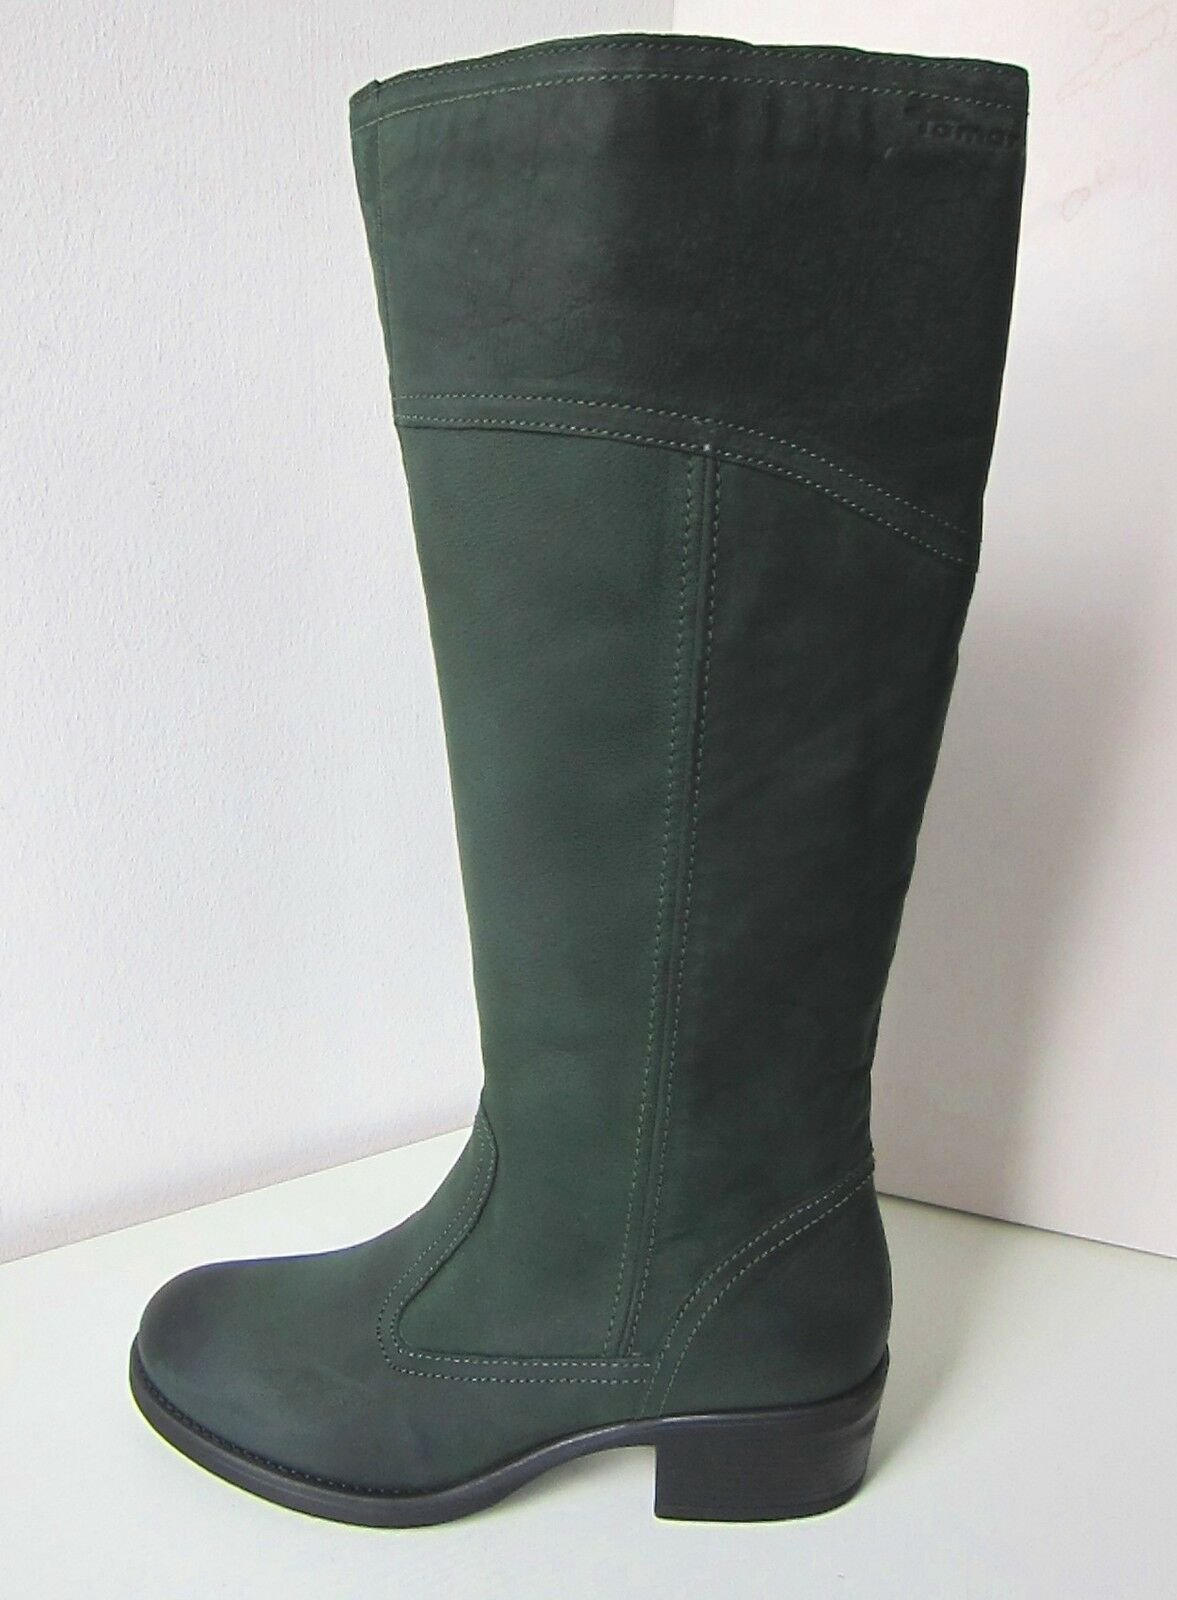 Tamaris pelle di velluto stivali larghezza L verde TG 41 SCURO leather boots BOTTLE VERDE SCURO 41 17e0c6